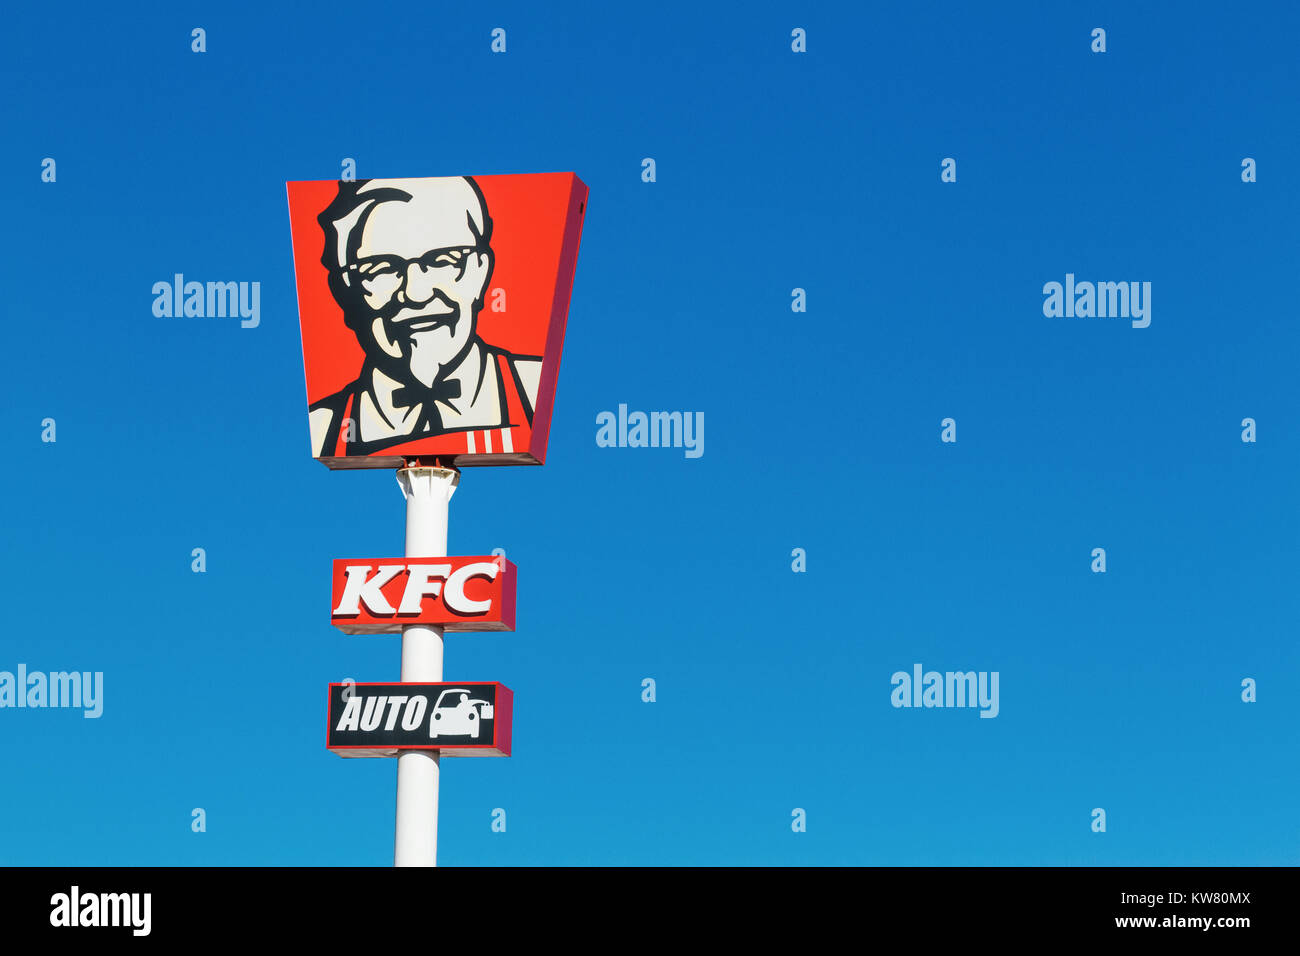 KFC logo over blue sky. KFC is an American fast food restaurant chain that specializes in fried chicken - Stock Image